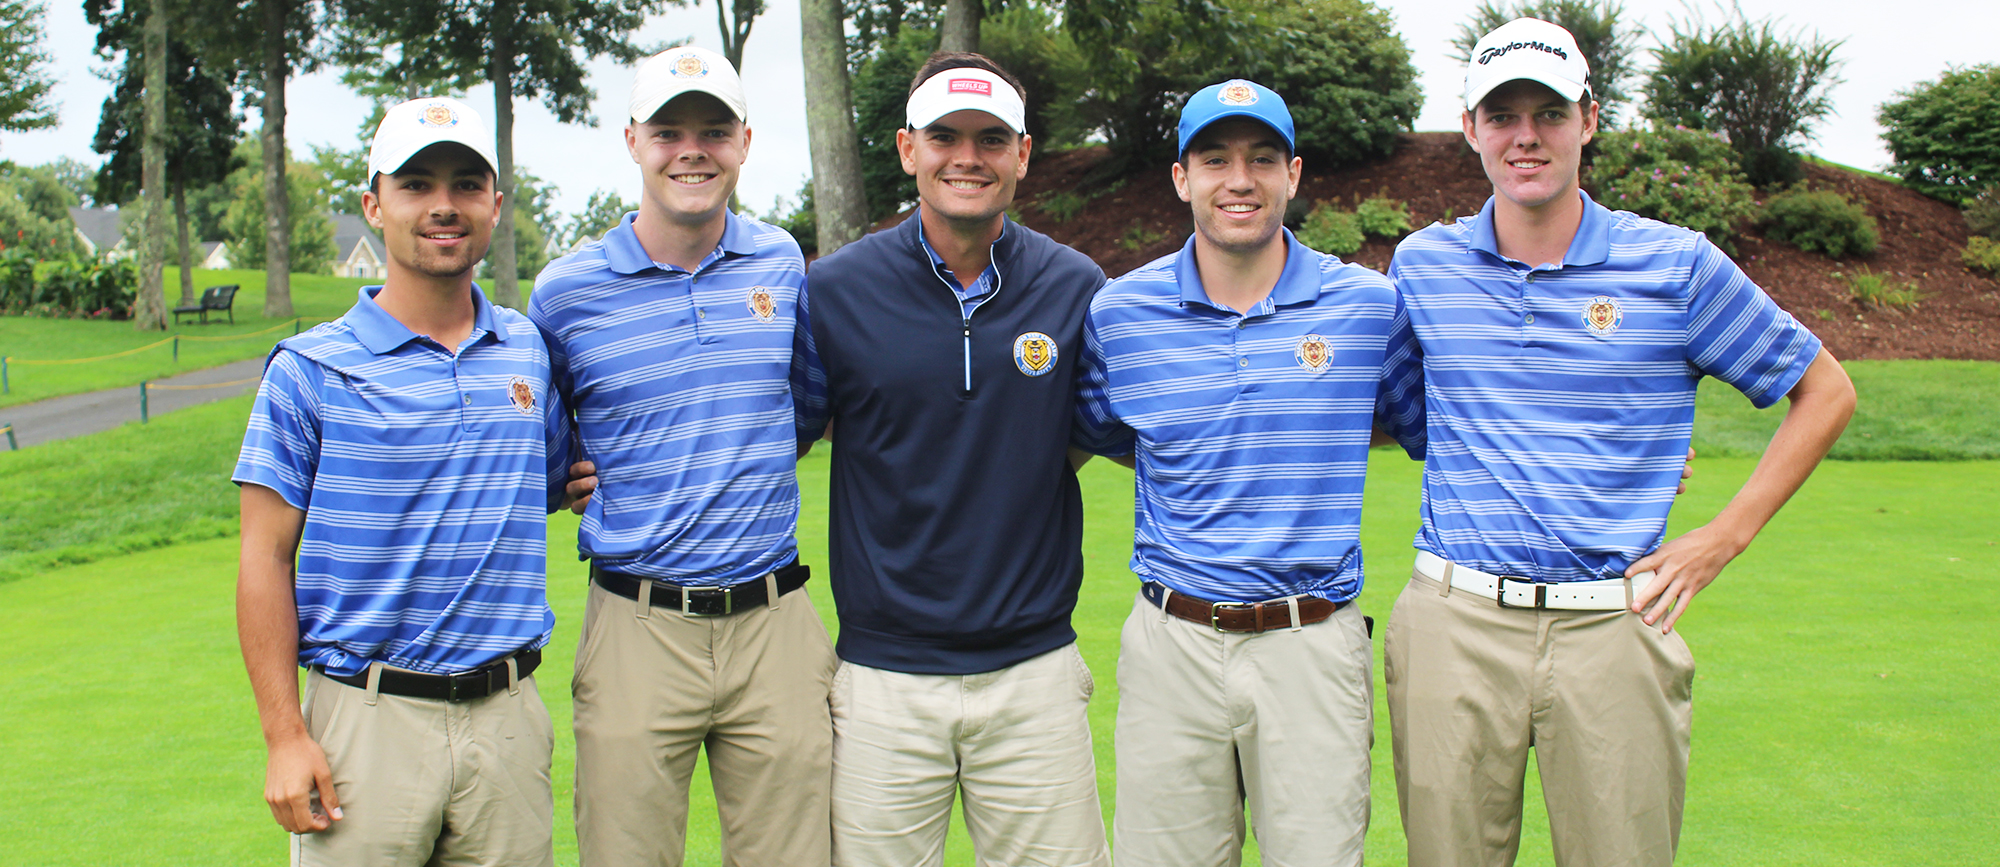 Western New England won the CCC Qualifier by four strokes on Wednesday to earn hosting rights for next spring's CCC Championship. (Photo by Erin Stanton)